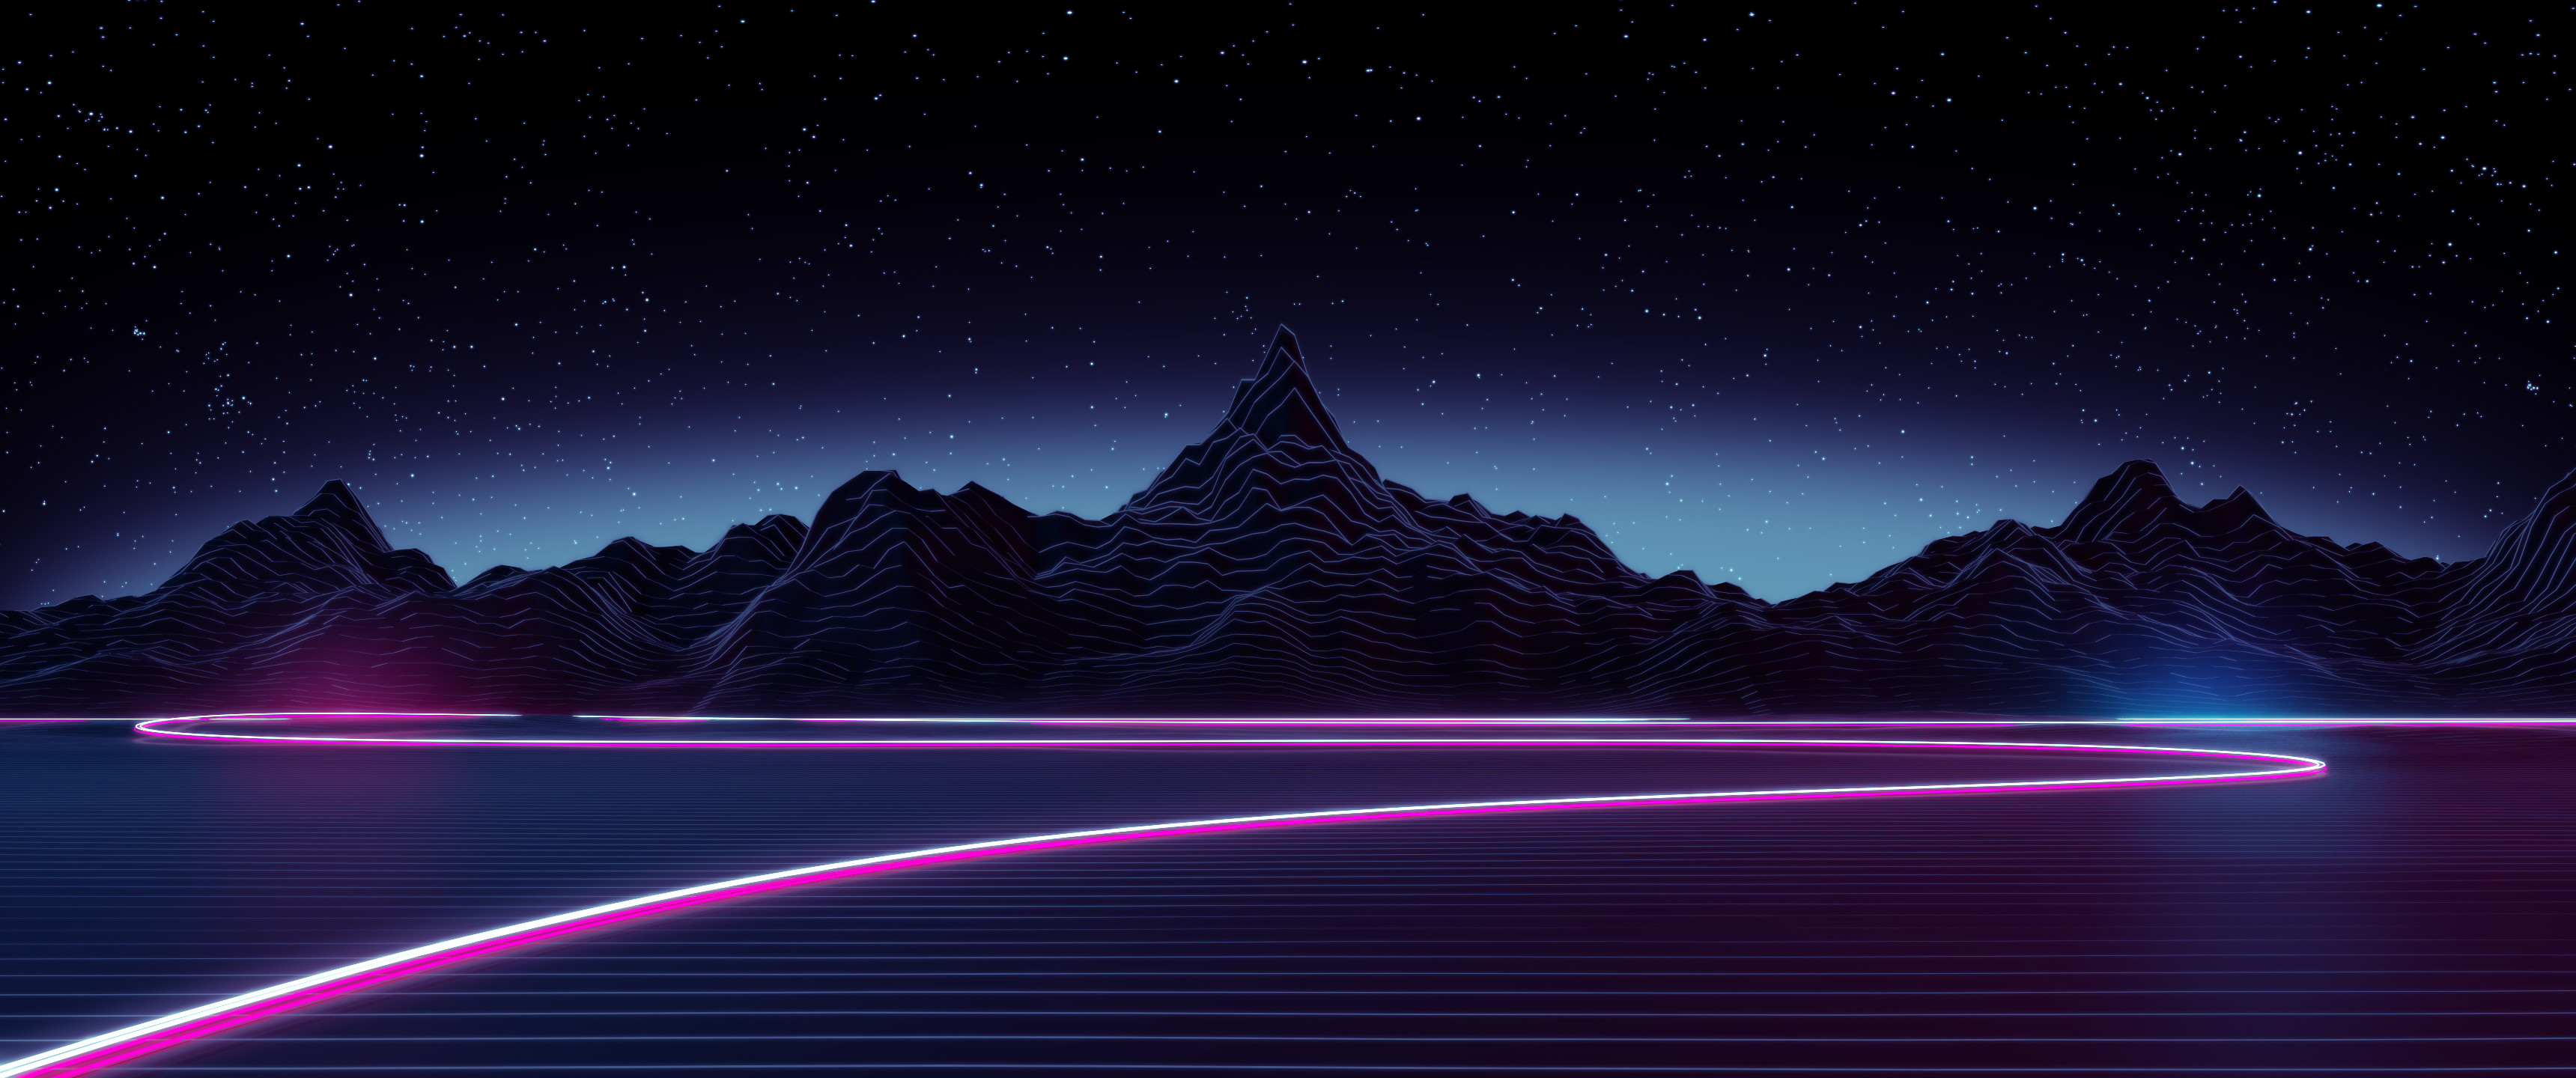 free aesthetic wallpapers 3440x1440 for 1080p   Wallpaper Cart 3440x1440